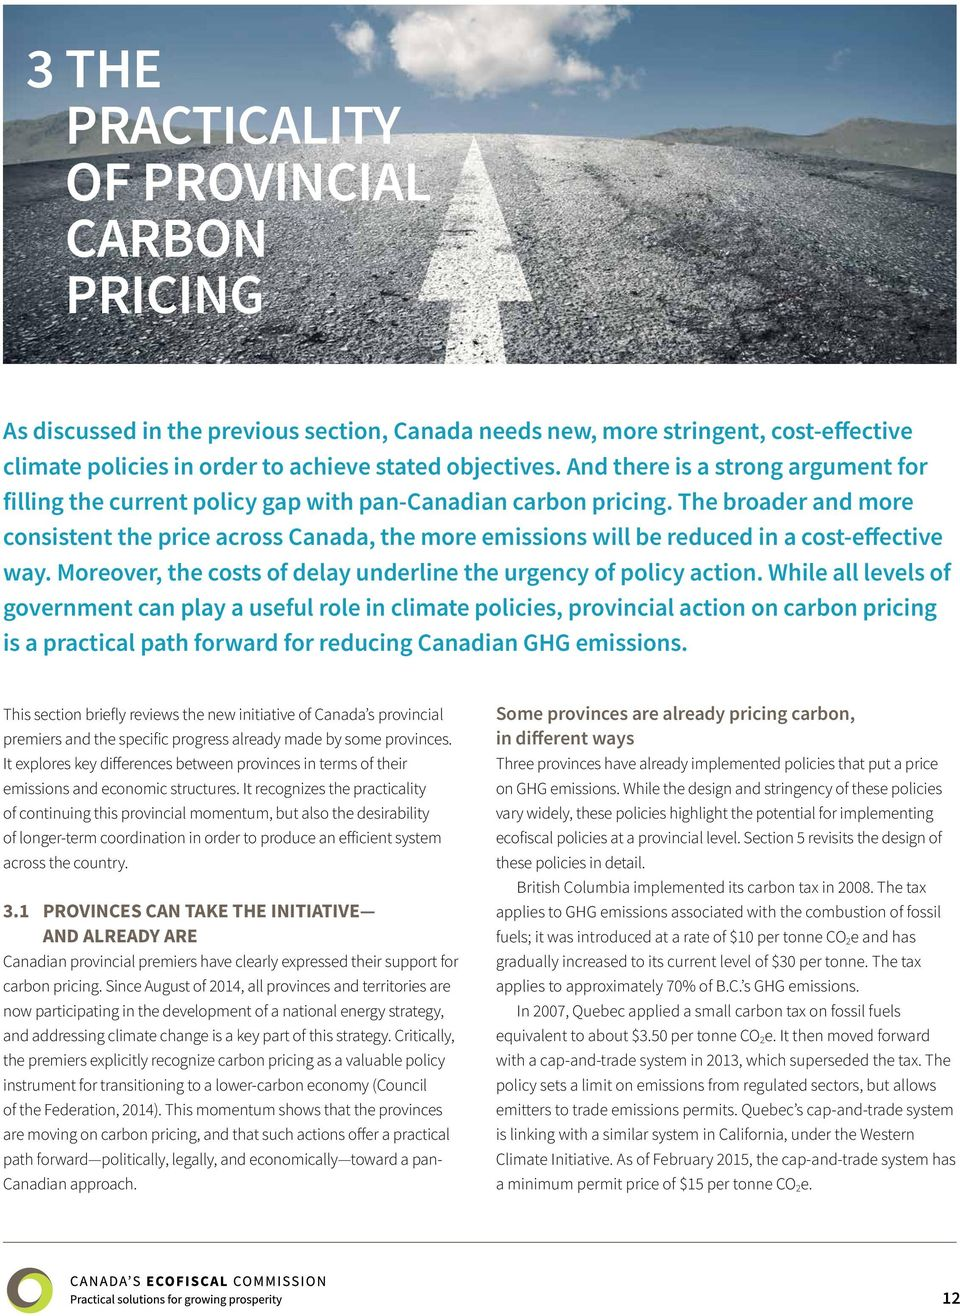 The broader and more consistent the price across Canada, the more emissions will be reduced in a cost-effective way. Moreover, the costs of delay underline the urgency of policy action.